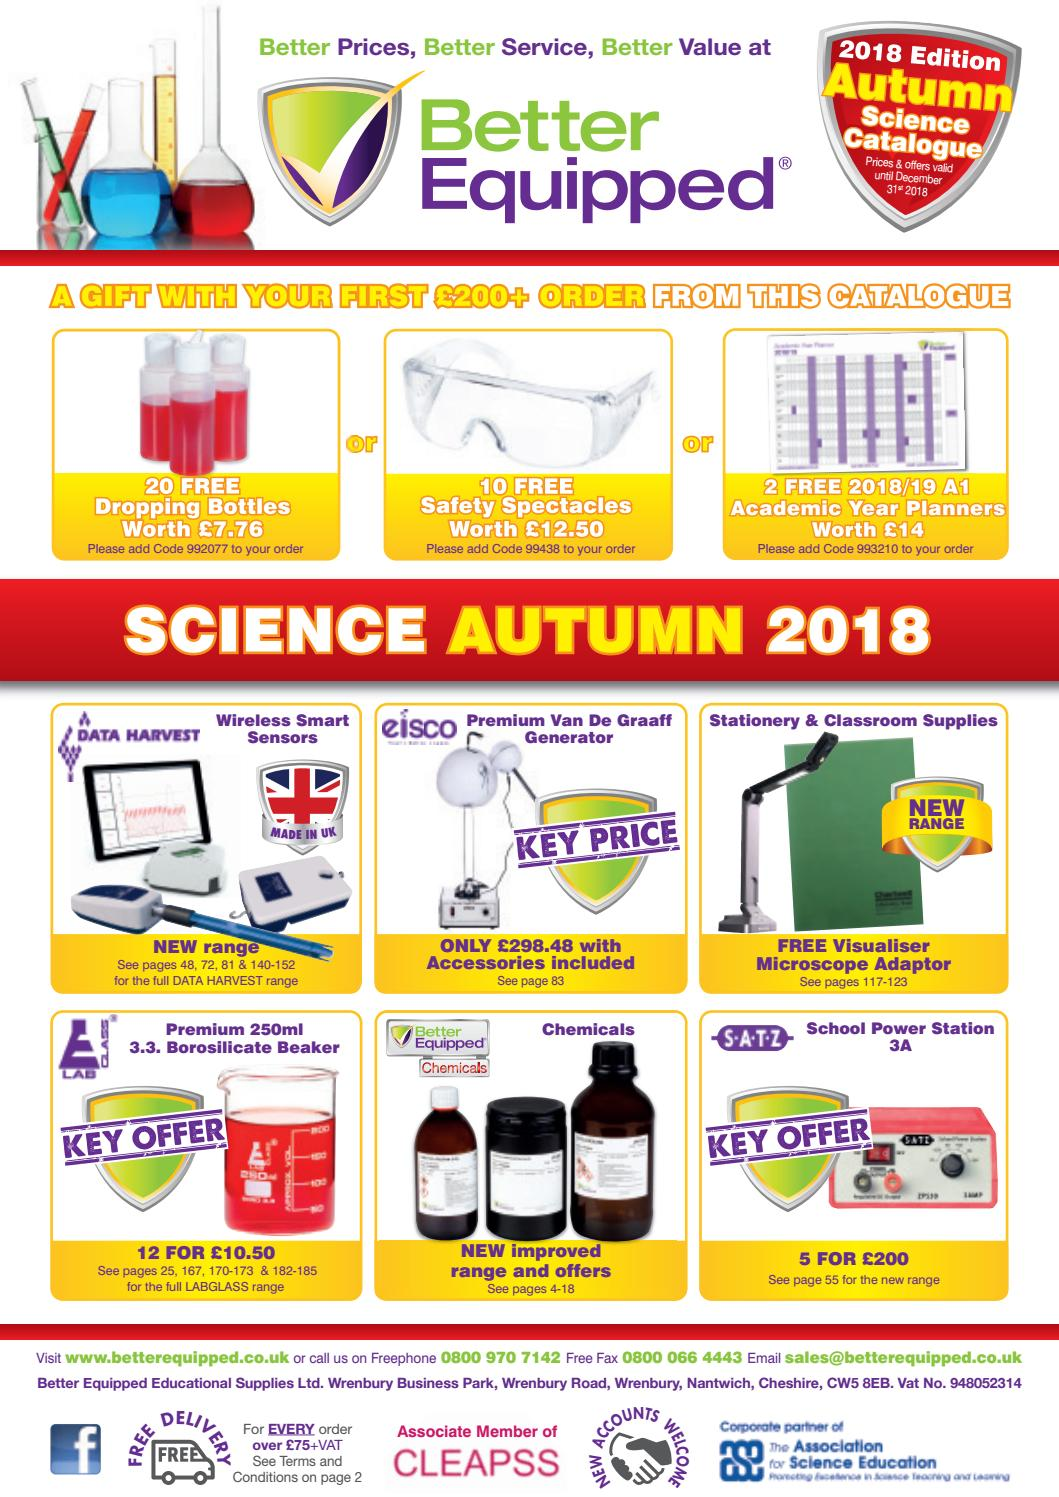 Better equipped educational supplies ltd autumn 2018 science better equipped educational supplies ltd autumn 2018 science catalogue by better equipped issuu fandeluxe Images